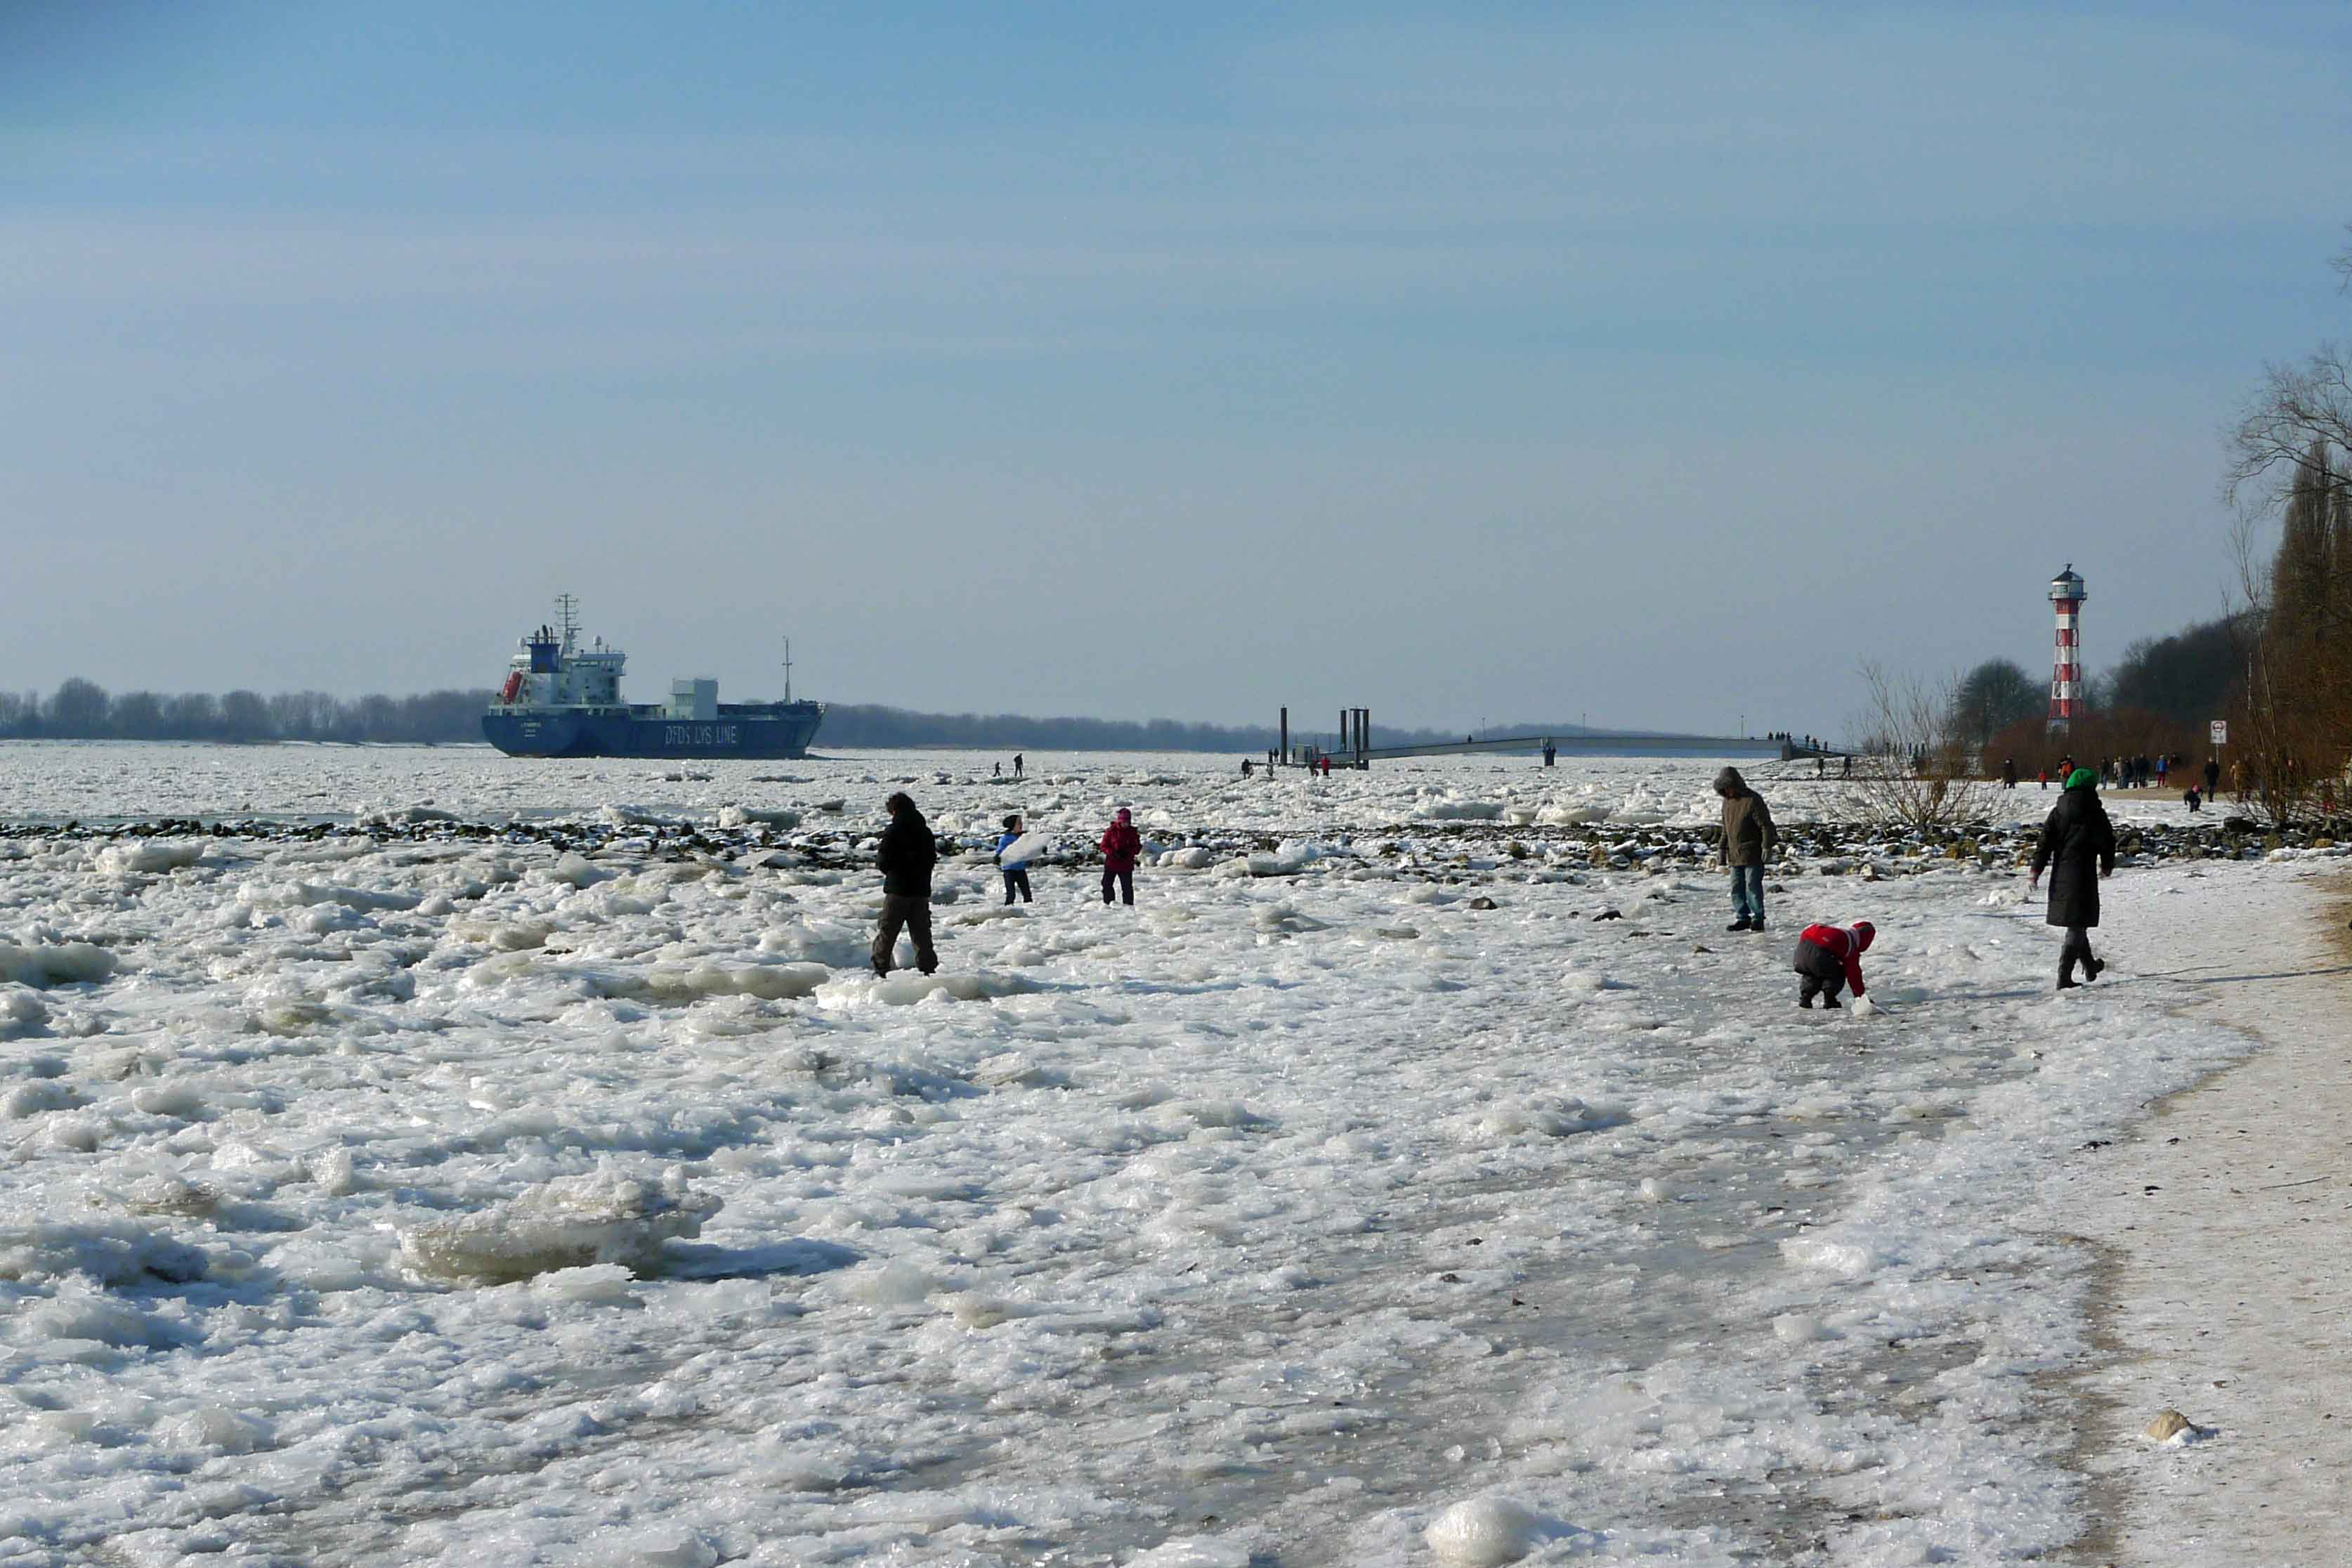 Winter_elbe_Eis_Schiff